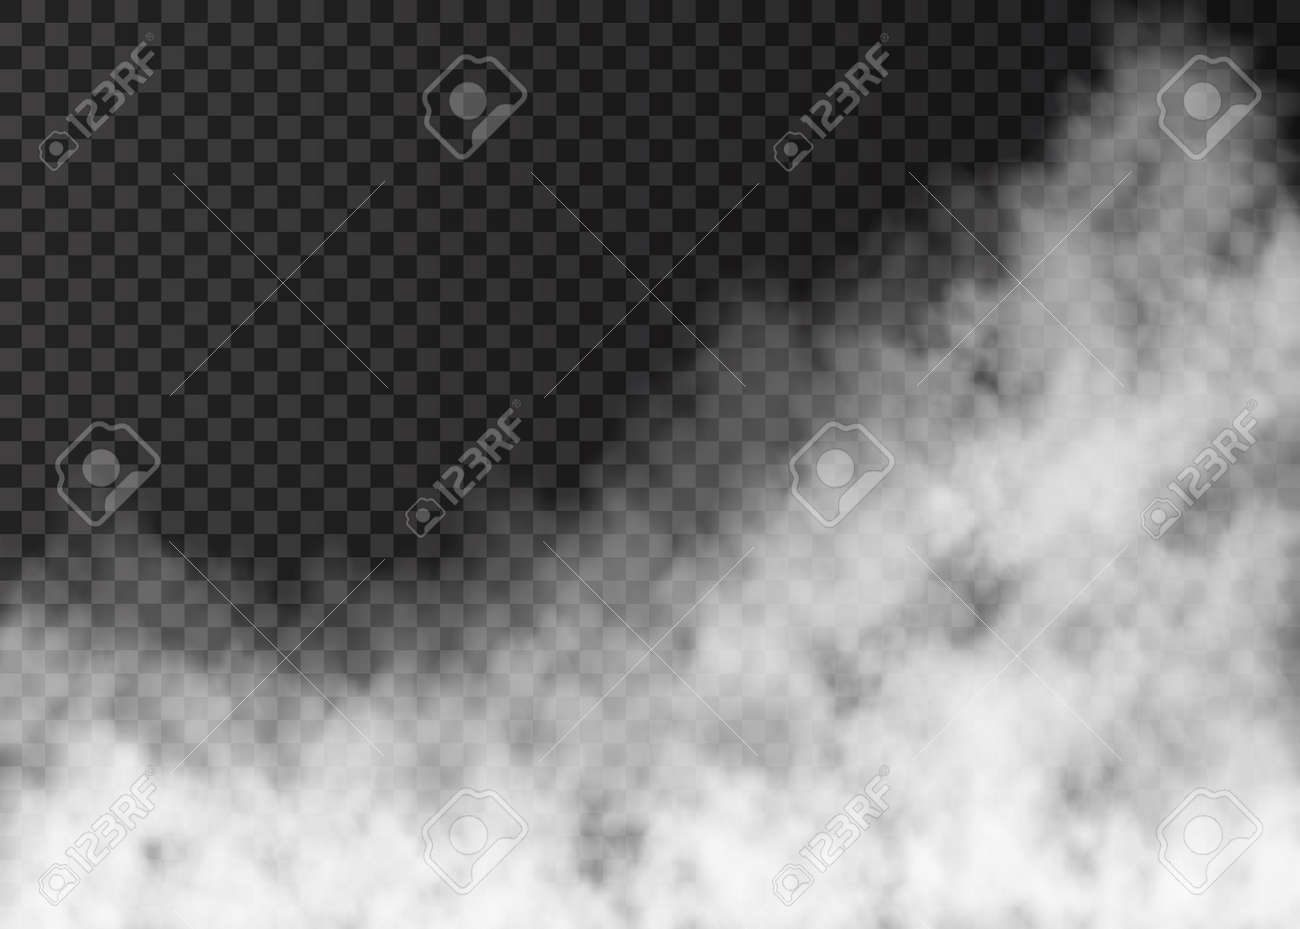 White smoke isolated on transparent background. Steam special effect. Realistic vector fire fog or mist texture. - 120490639